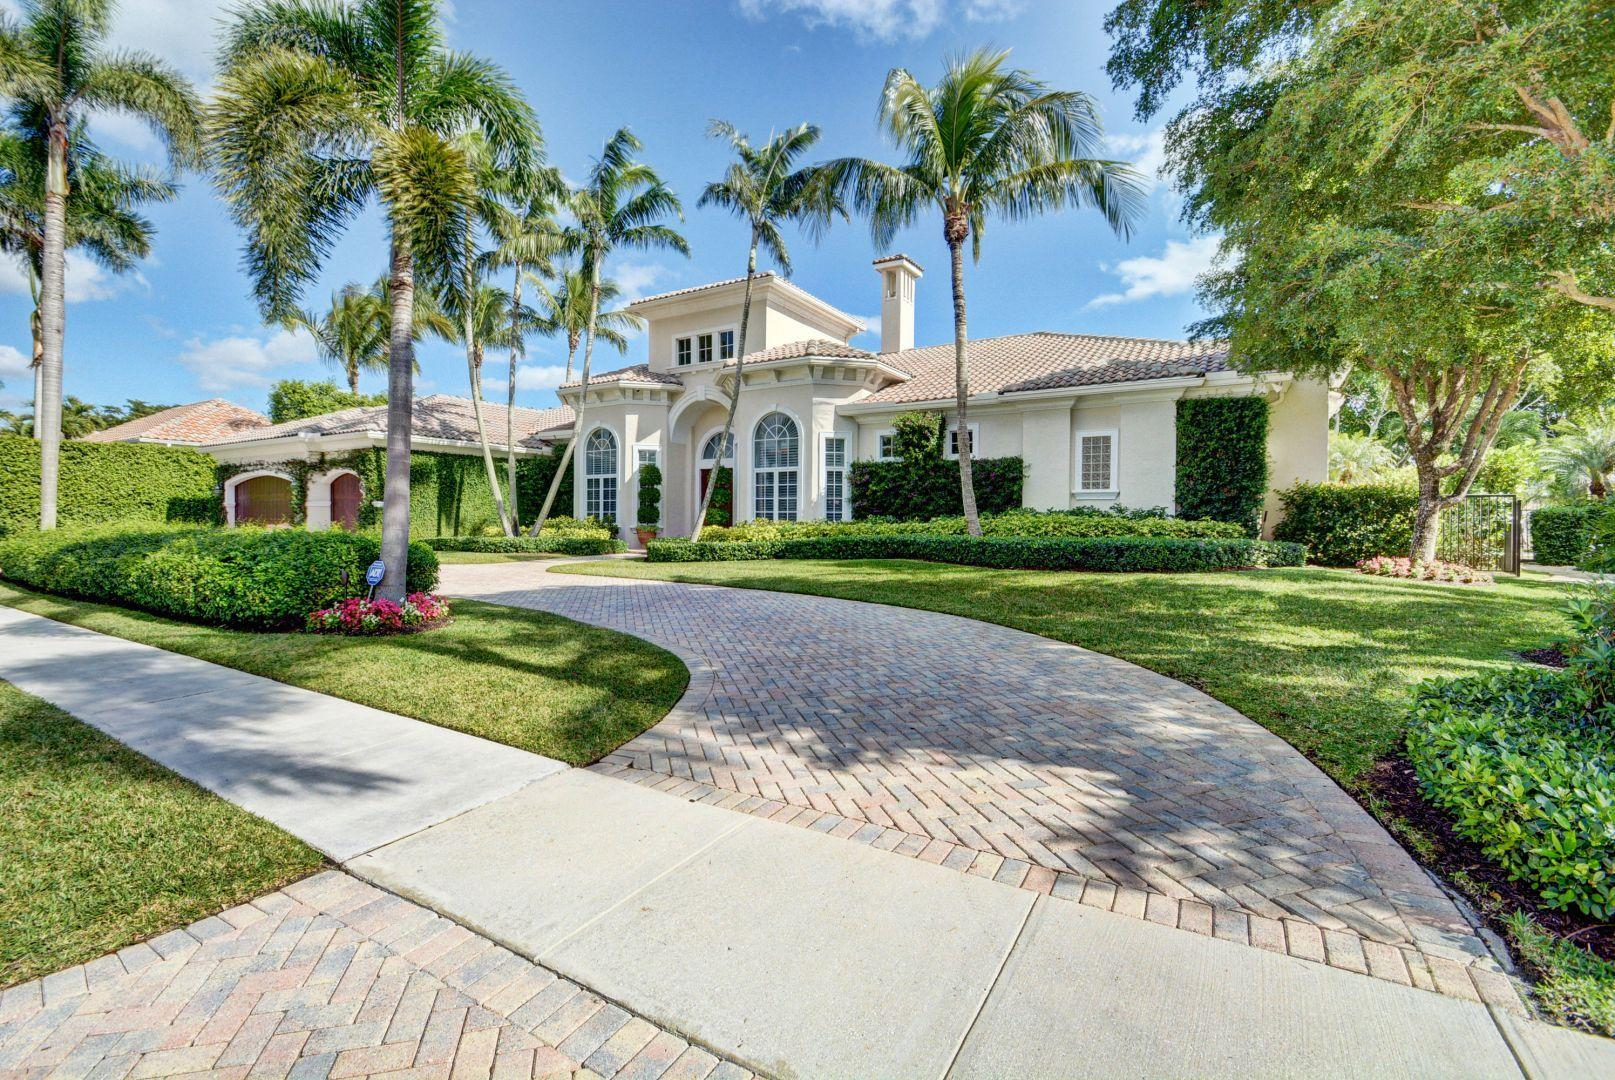 12820 Mizner Way, Wellington, Florida 33414, 5 Bedrooms Bedrooms, ,5.1 BathroomsBathrooms,Single Family,For Sale,Palm Beach Polo,Mizner,RX-10558447